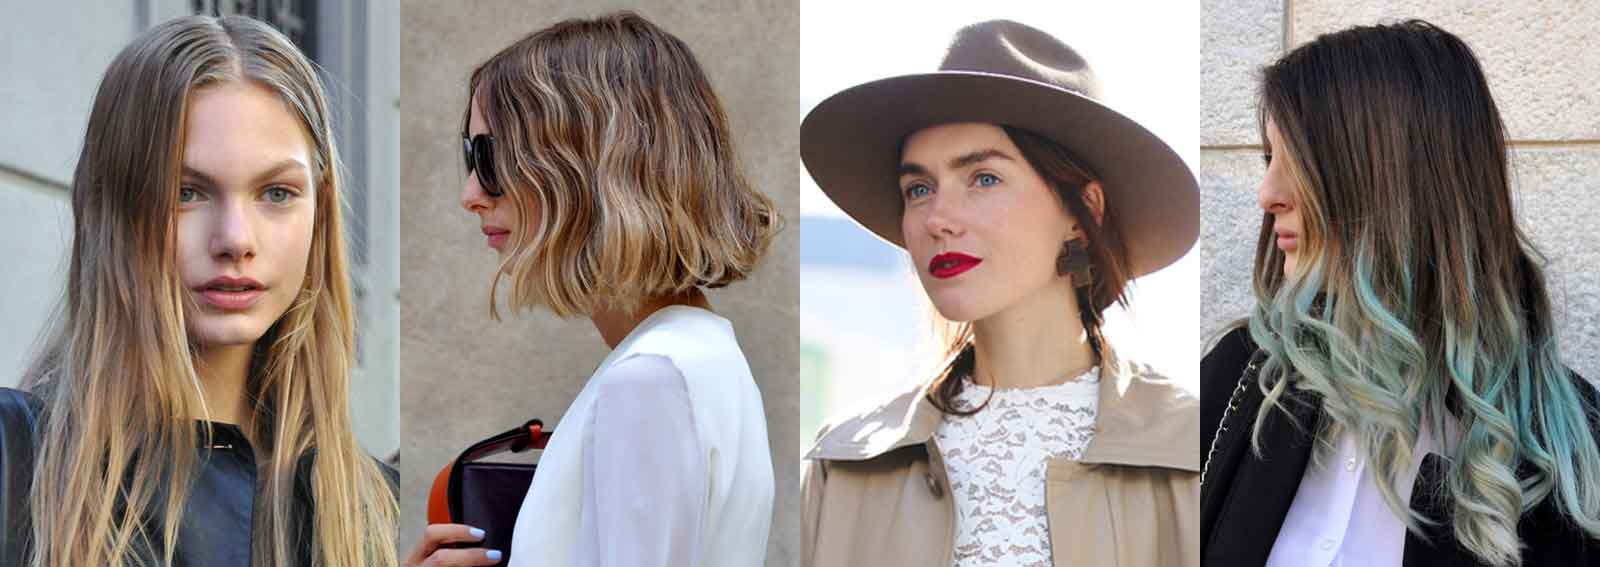 cover-capelli-street-style-2016